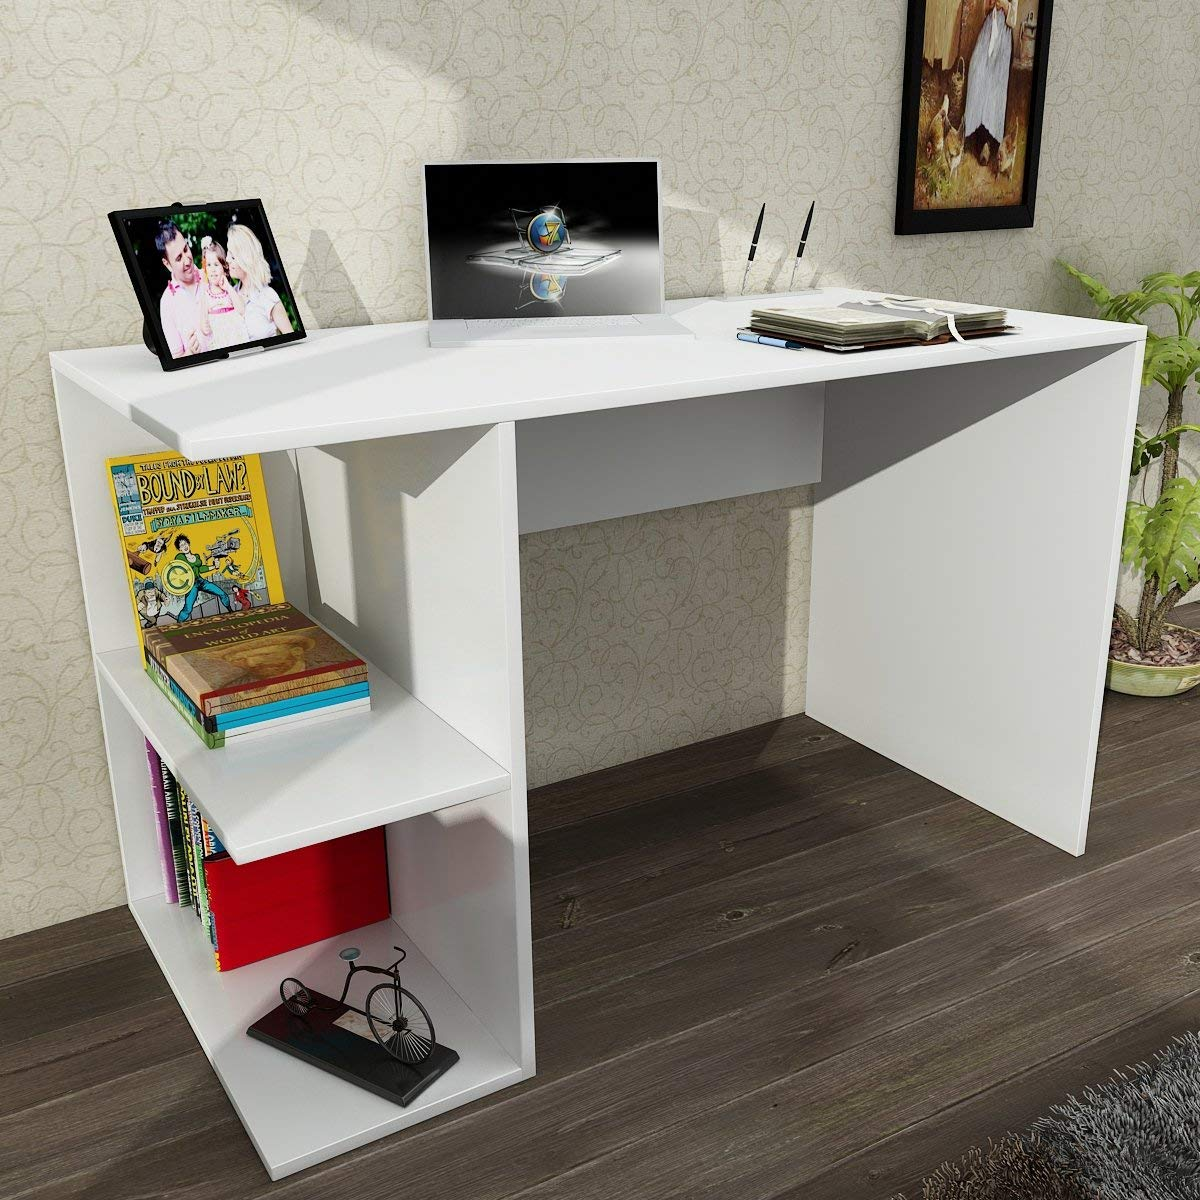 Writing Computer Desk Modern & Simple White One Color Rectangle Functional Stylish Modern Study Desk Industrial Style Study & Laptop Table for Home, Office, Living Room, Study Room